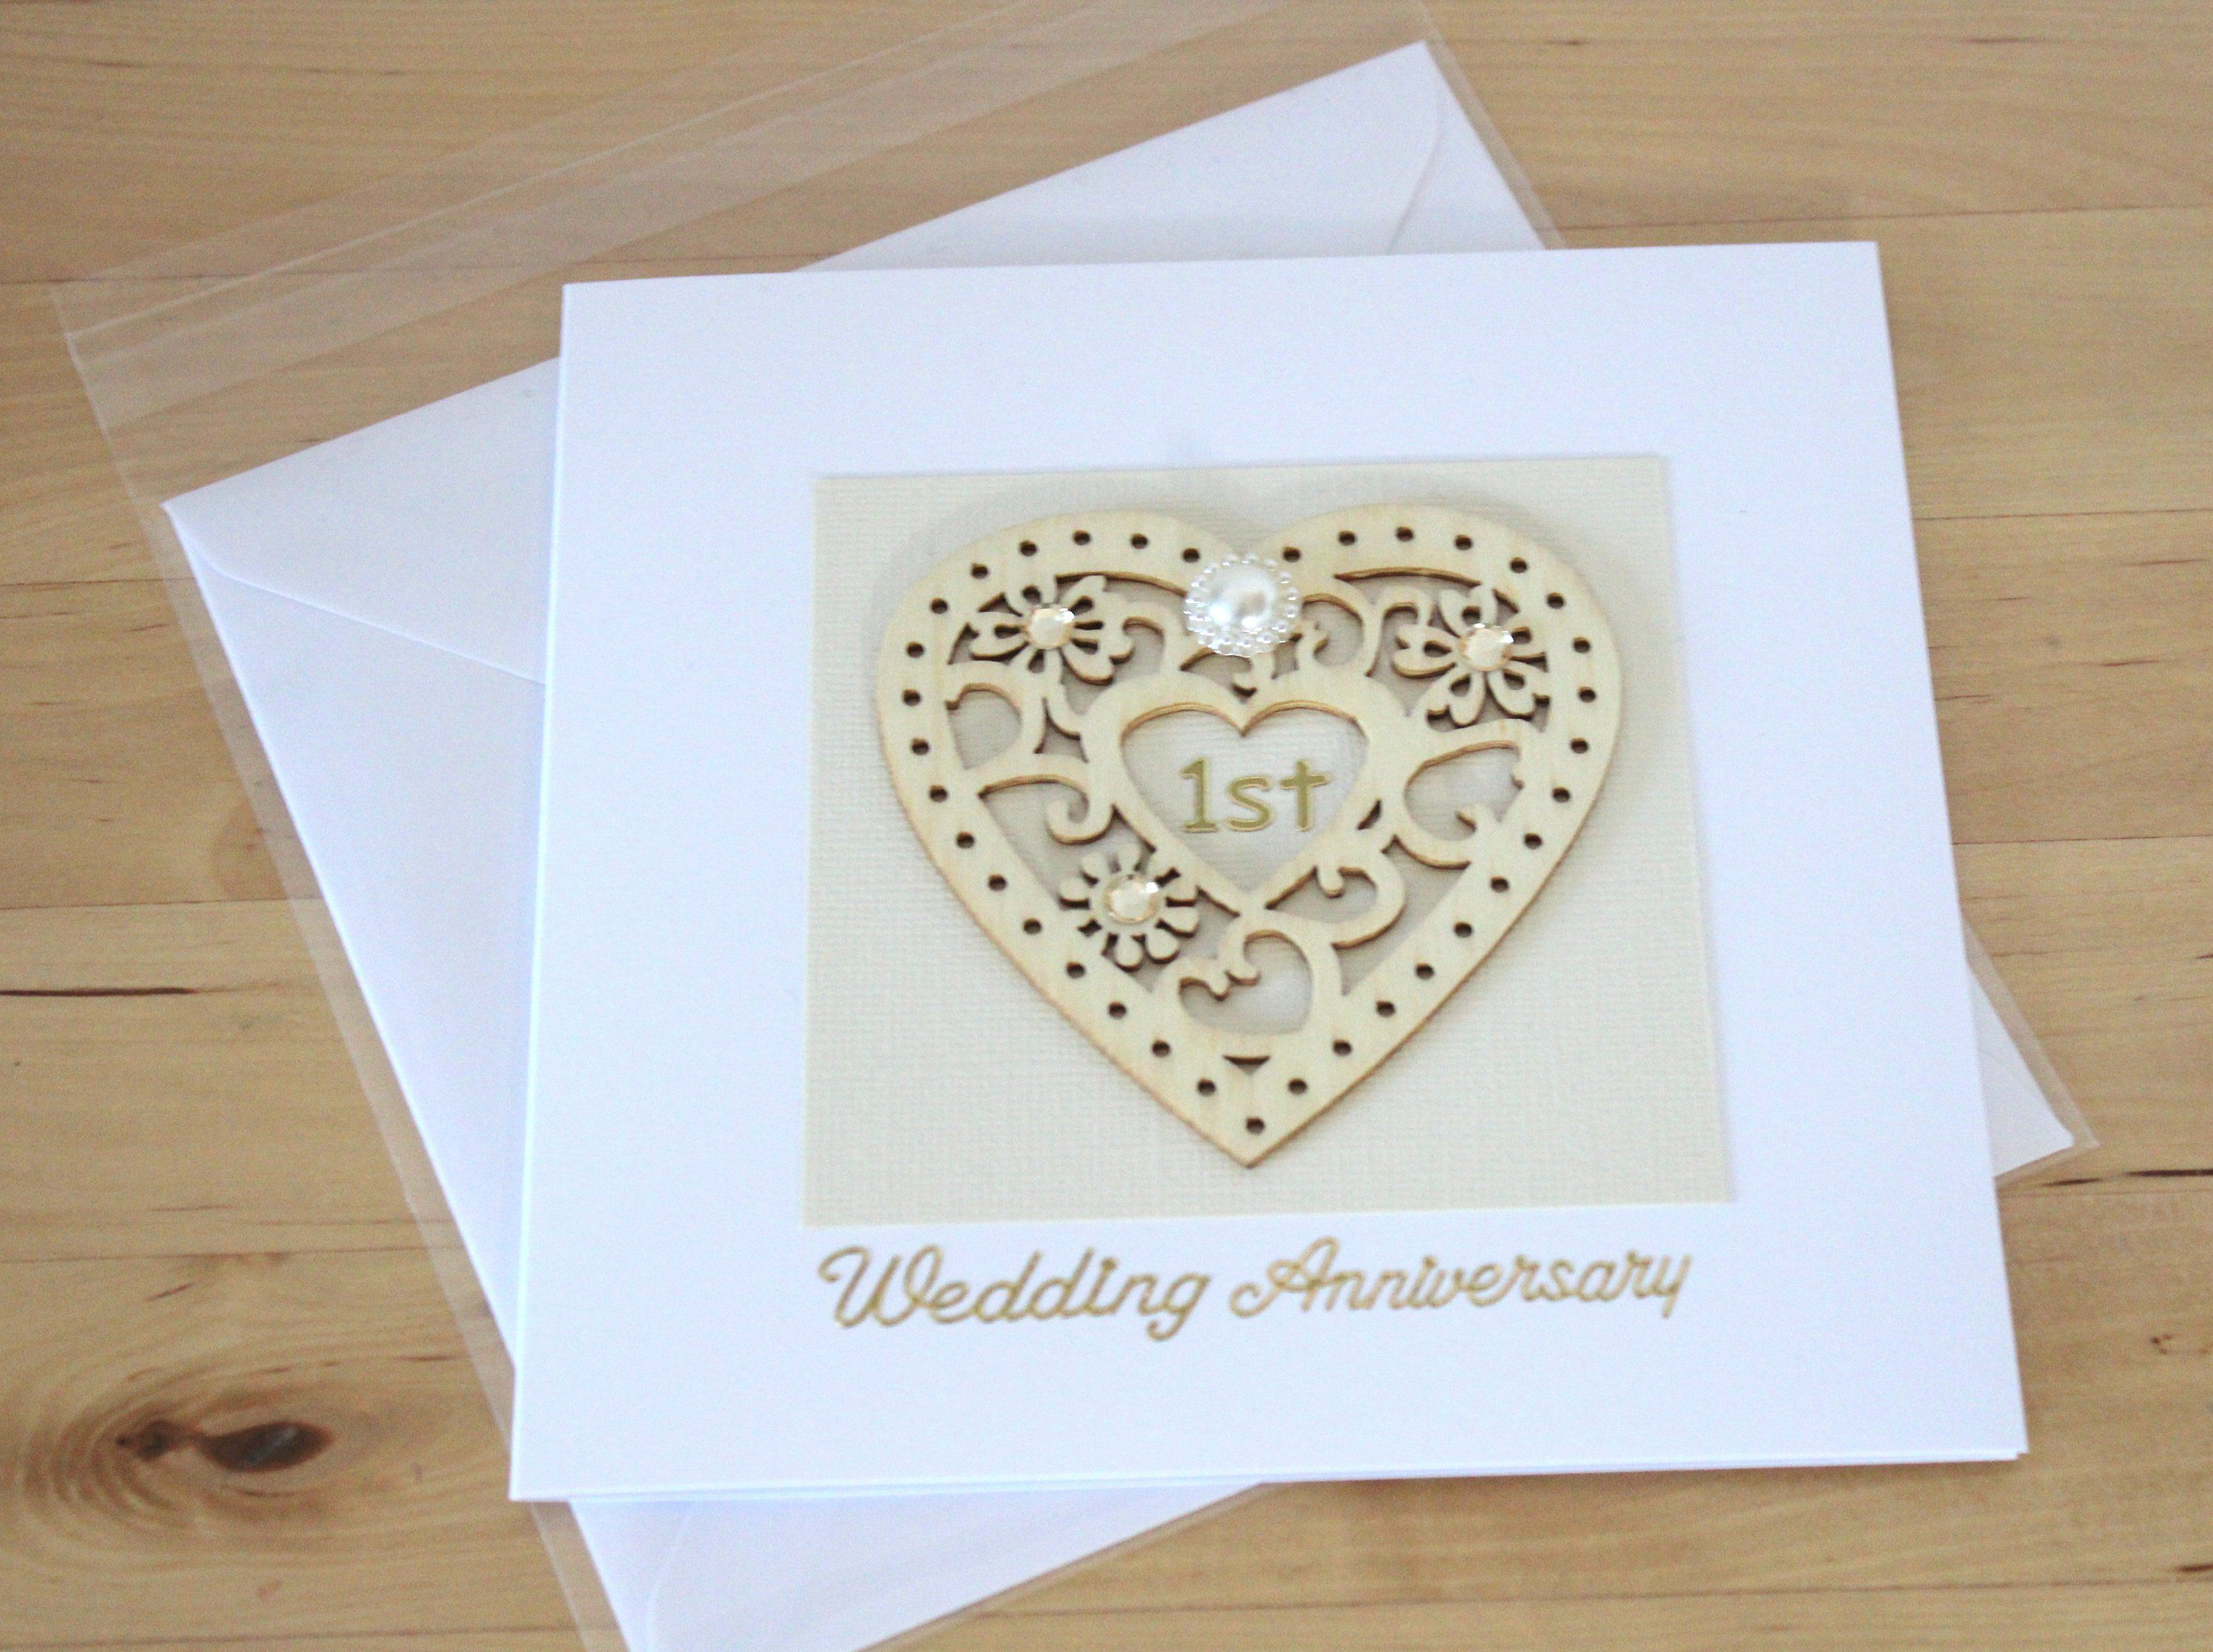 First Wedding Anniversary card gift for husband wife